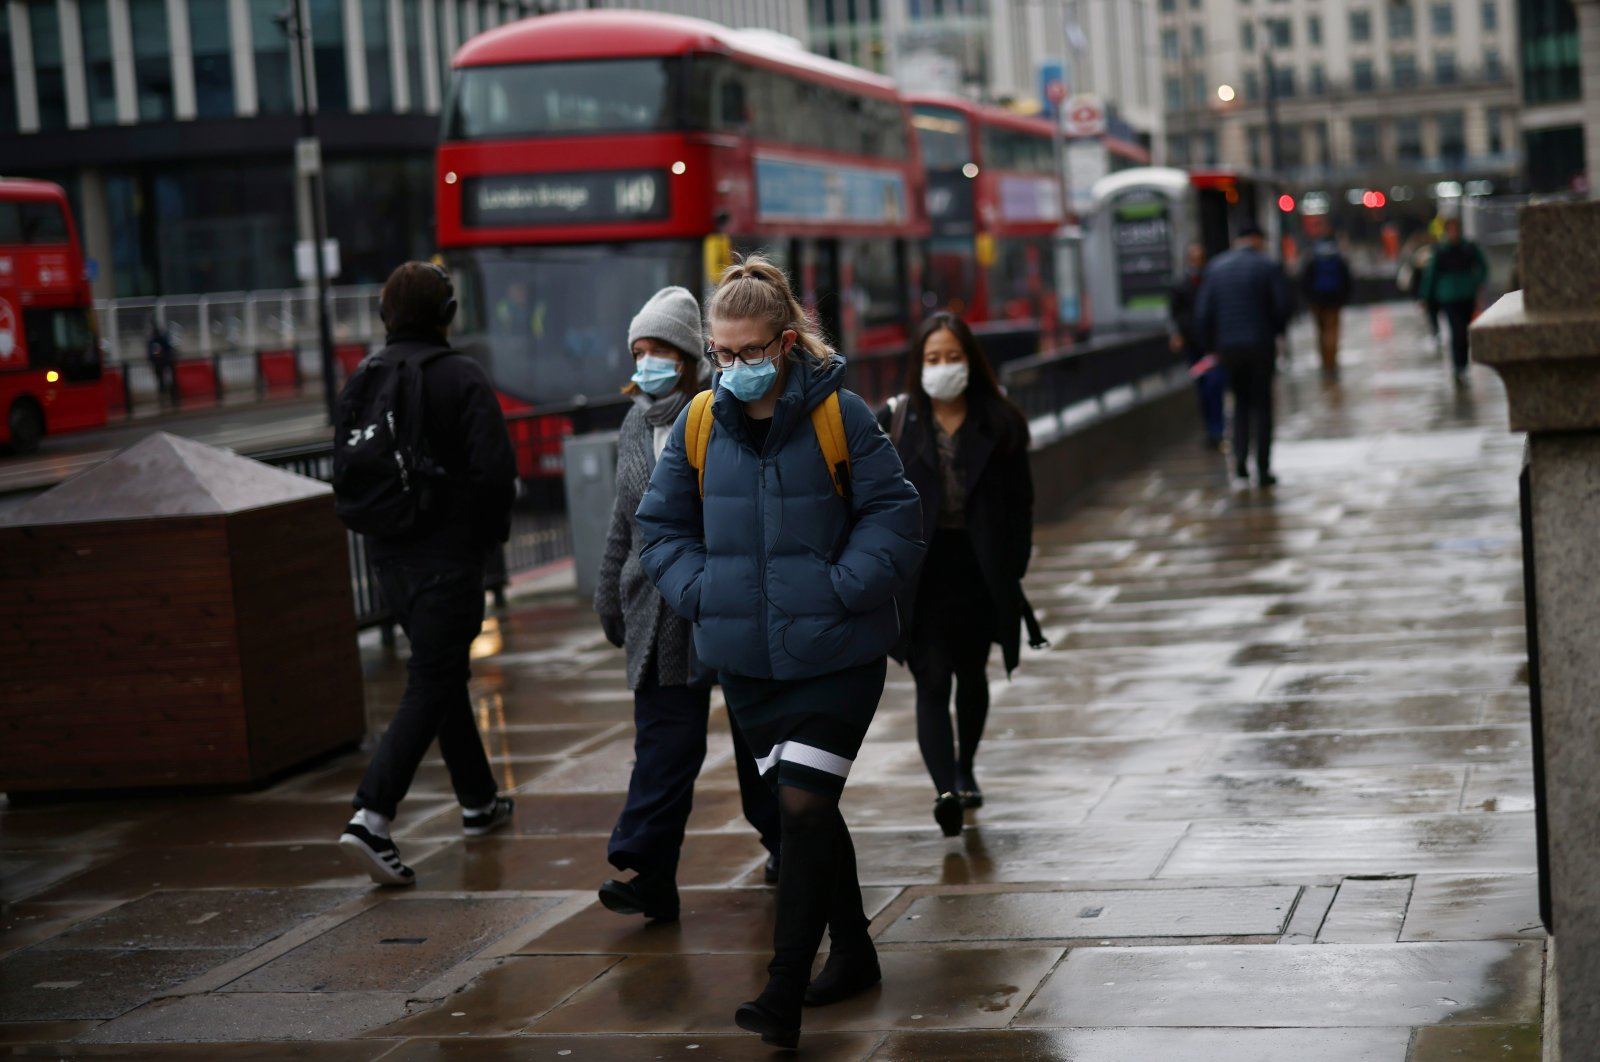 People walk over London Bridge during rush hour, amid the coronavirus disease (COVID-19) outbreak, in London, Britain, March 4, 2021. (Reuters Photo)